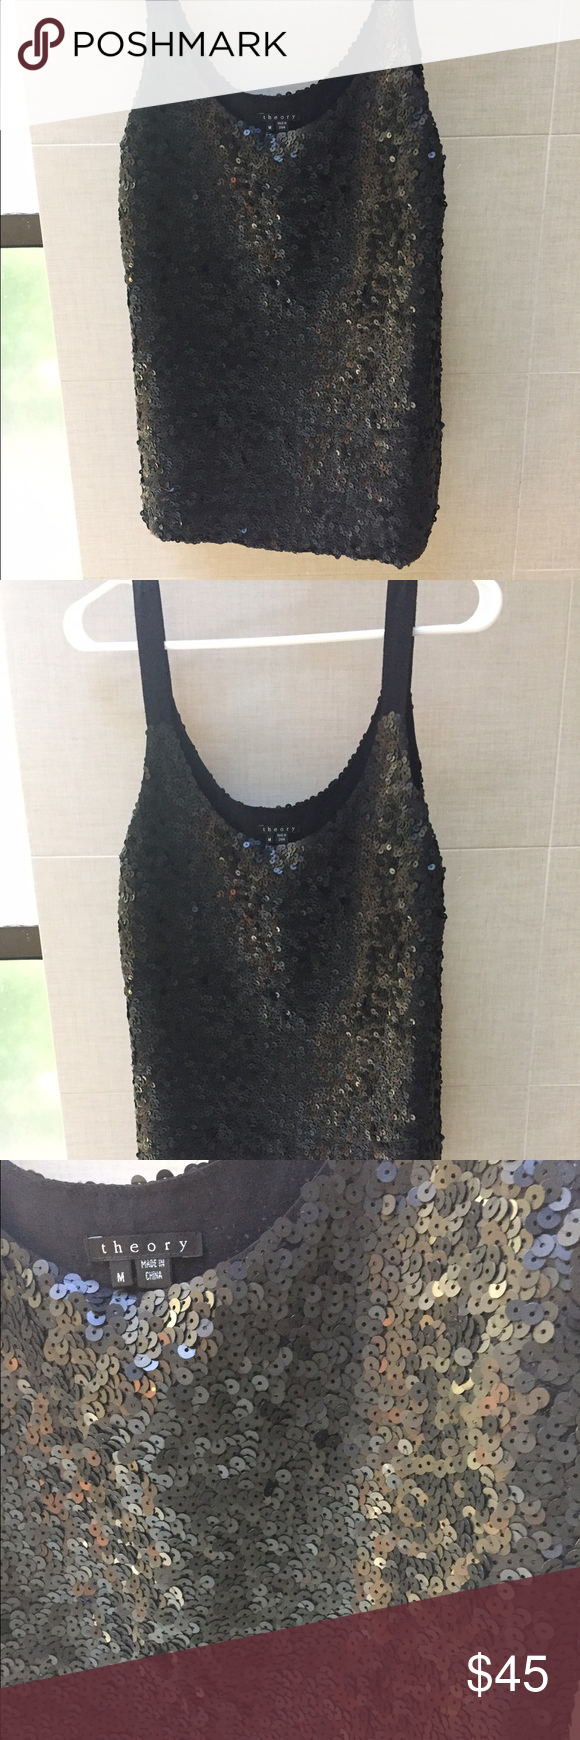 Black sequin top, perfect condition Great looking top Theory Tops